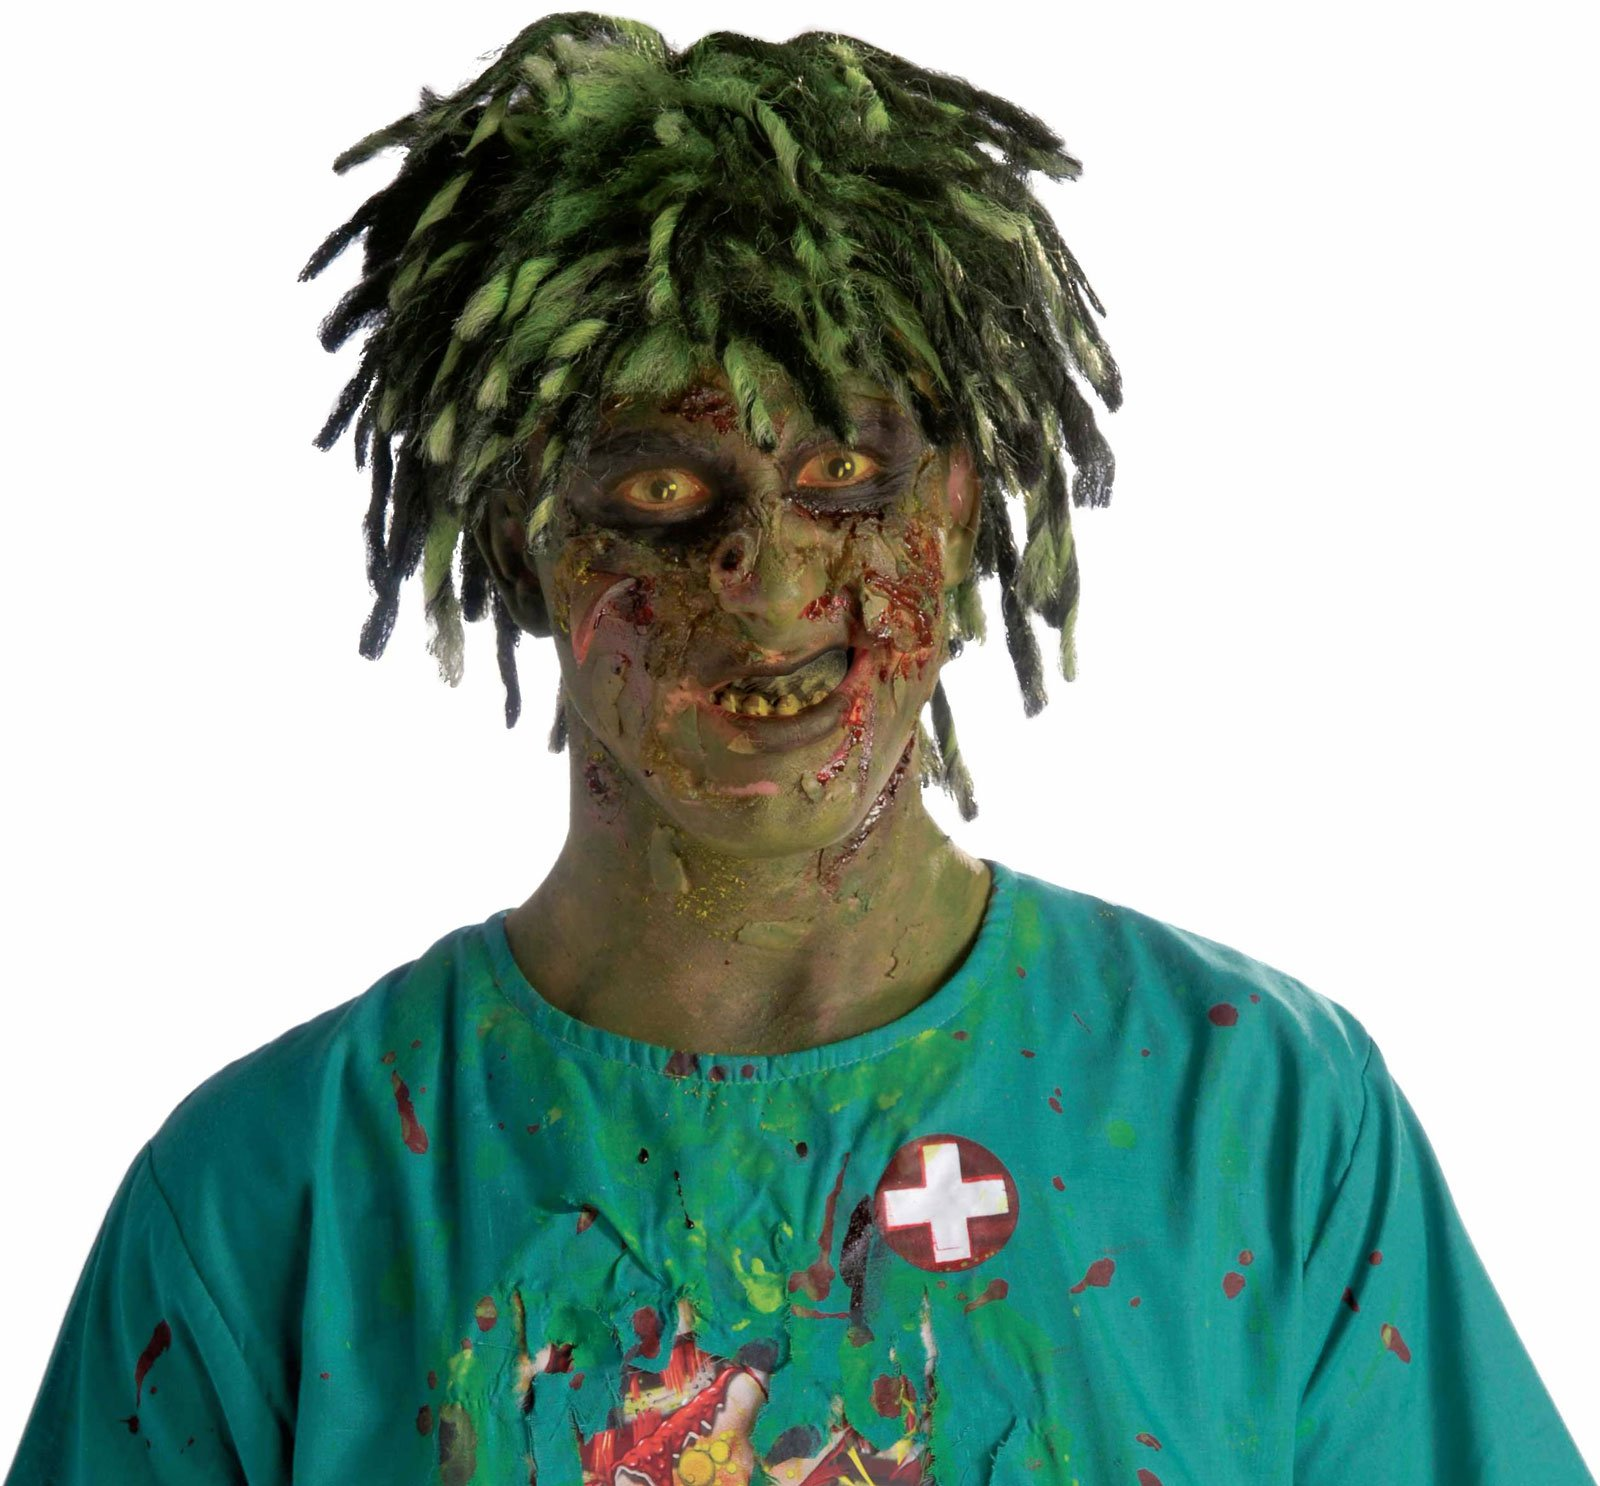 Biohazard Zombie Contaminated Adult Wig